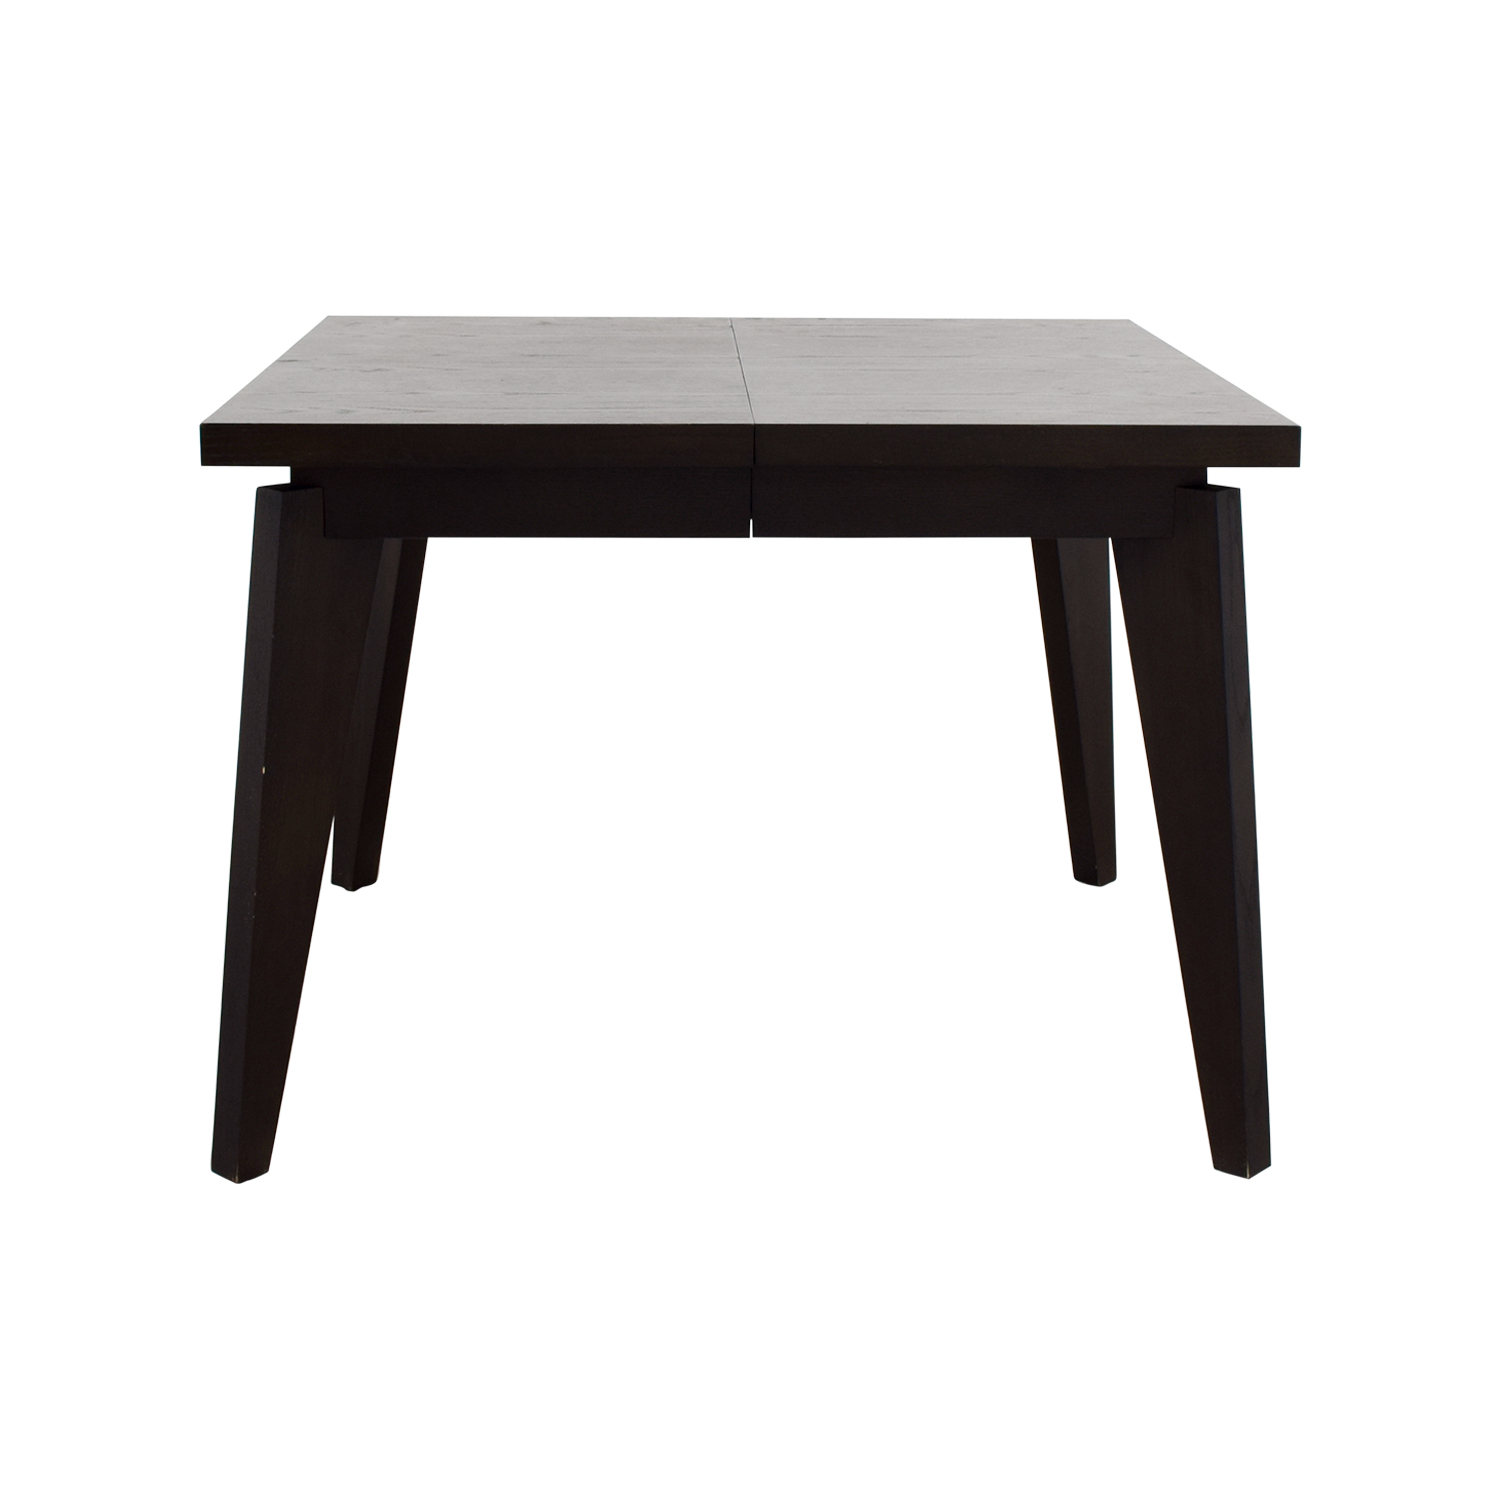 West Elm West Elm Extendable Dining Table Black